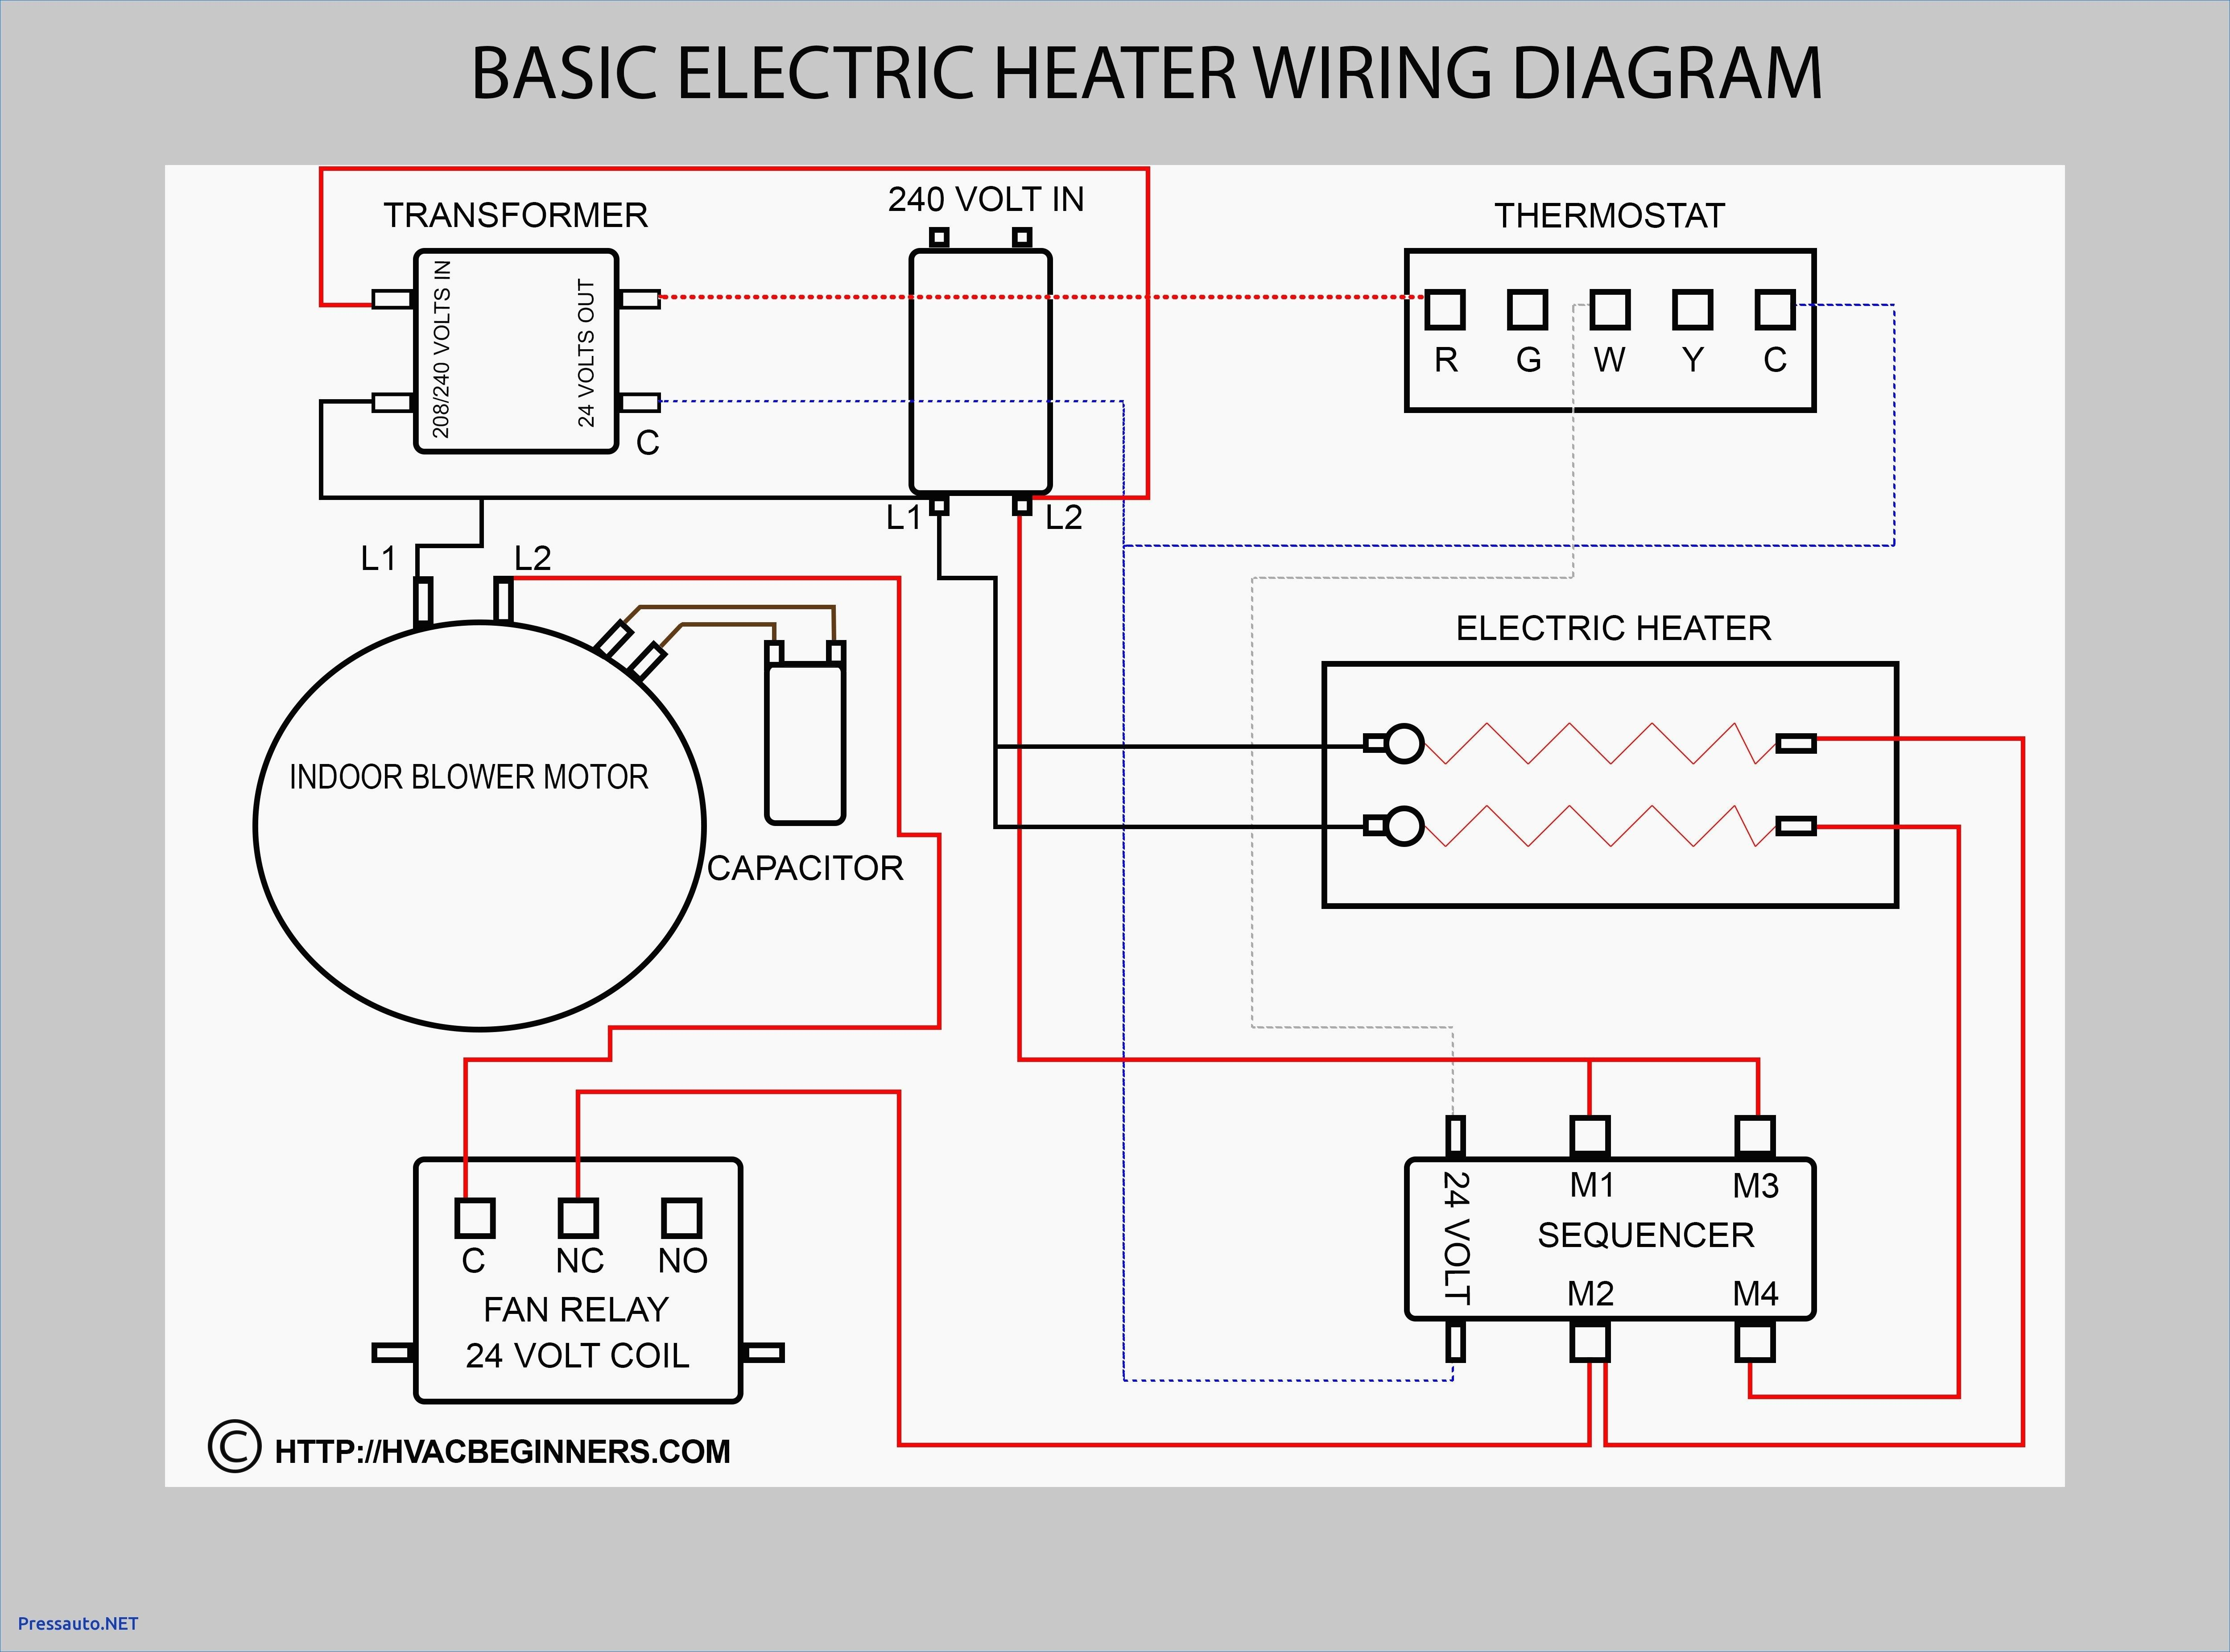 electric furnace wiring diagram 240 volt wiring diagrams value electric furnace wiring diagram 240 volt [ 5000 x 3704 Pixel ]